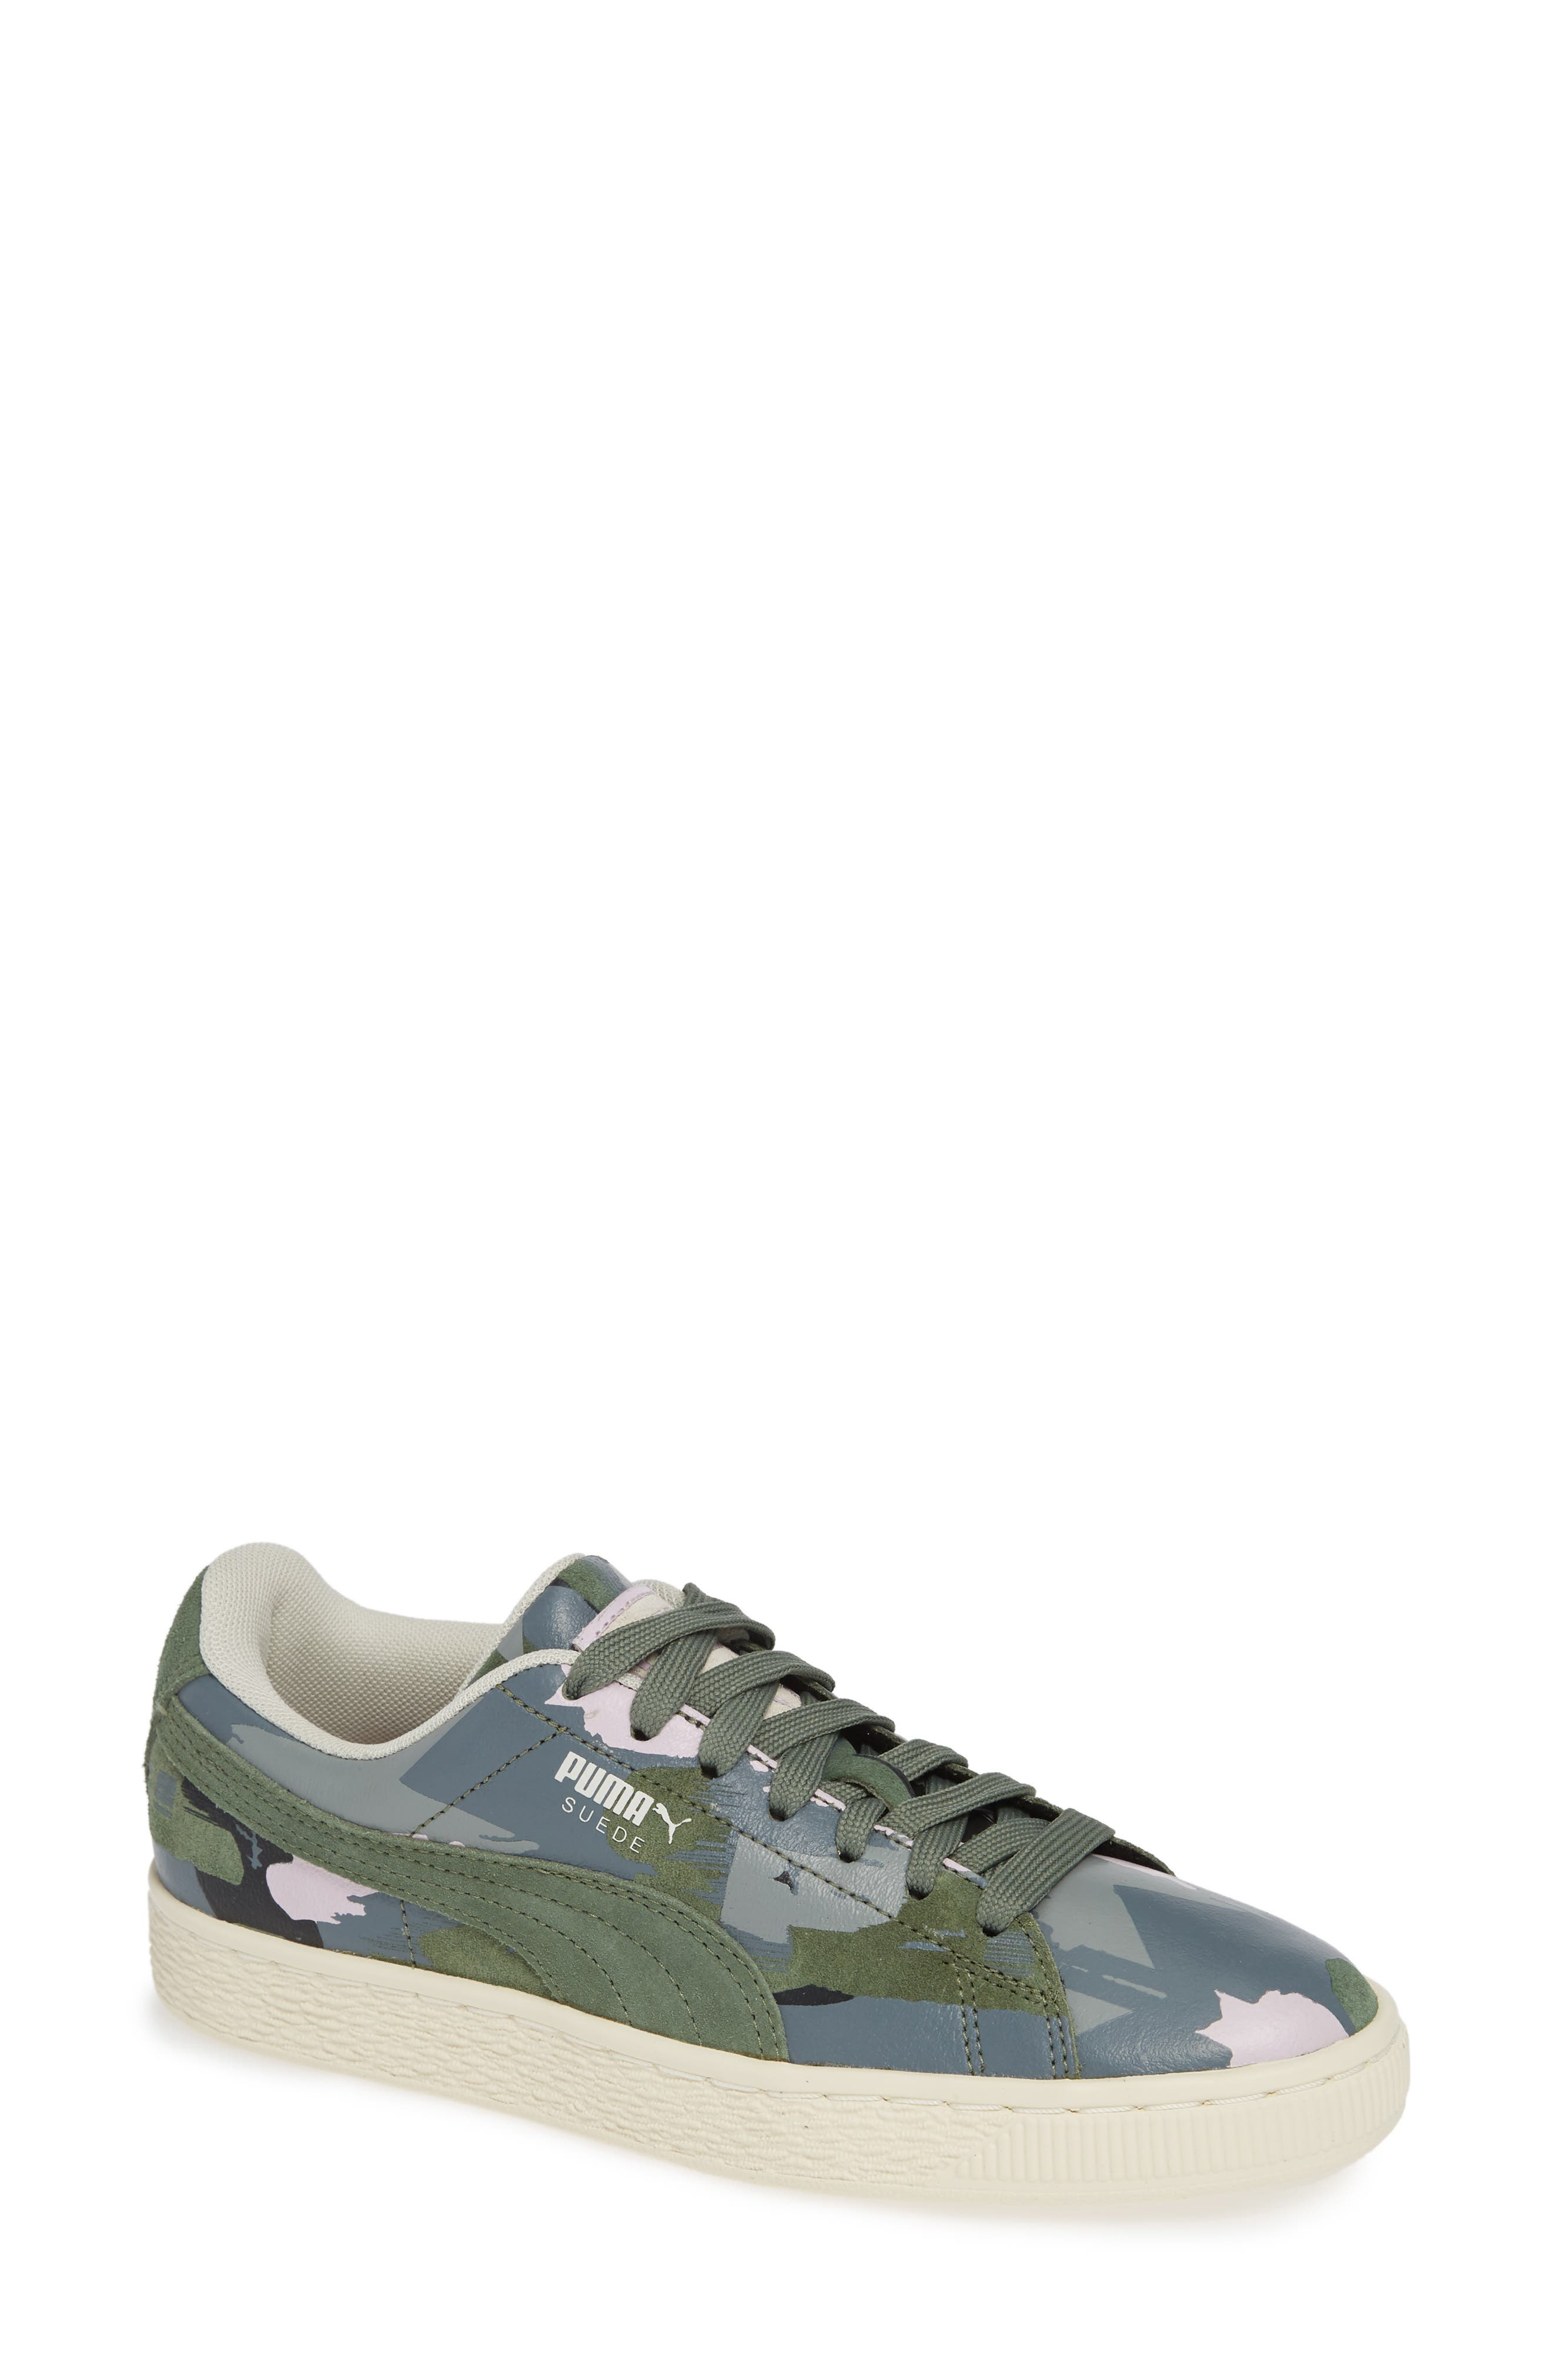 'Suede Classic' Sneaker,                         Main,                         color, 301